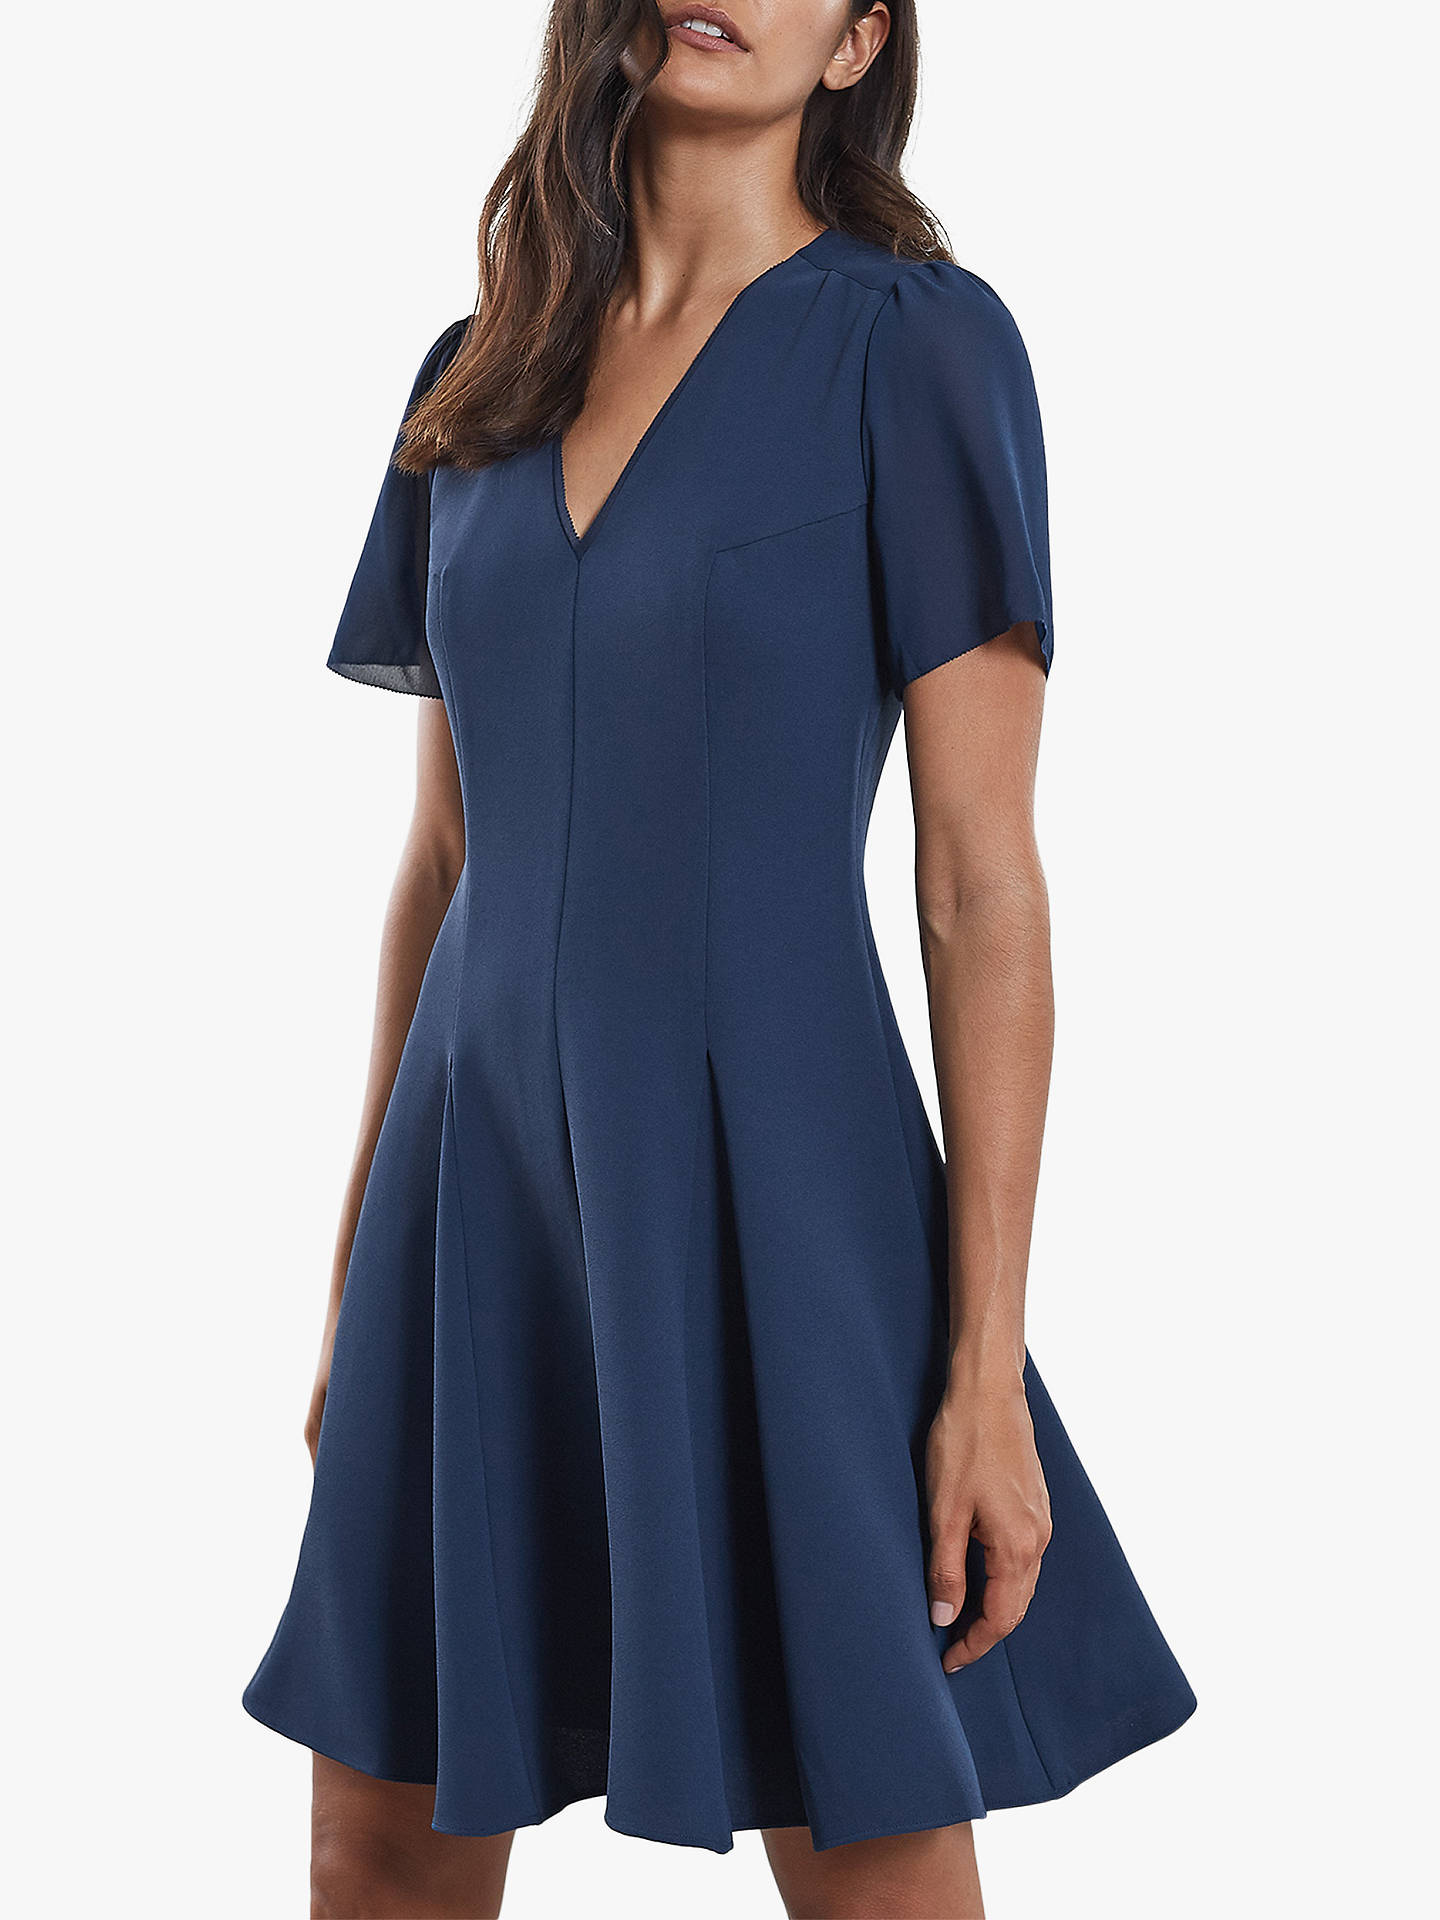 BuyReiss Seamed Chiffon Sleeve Flare Dress, Teal, 6 Online at johnlewis.com